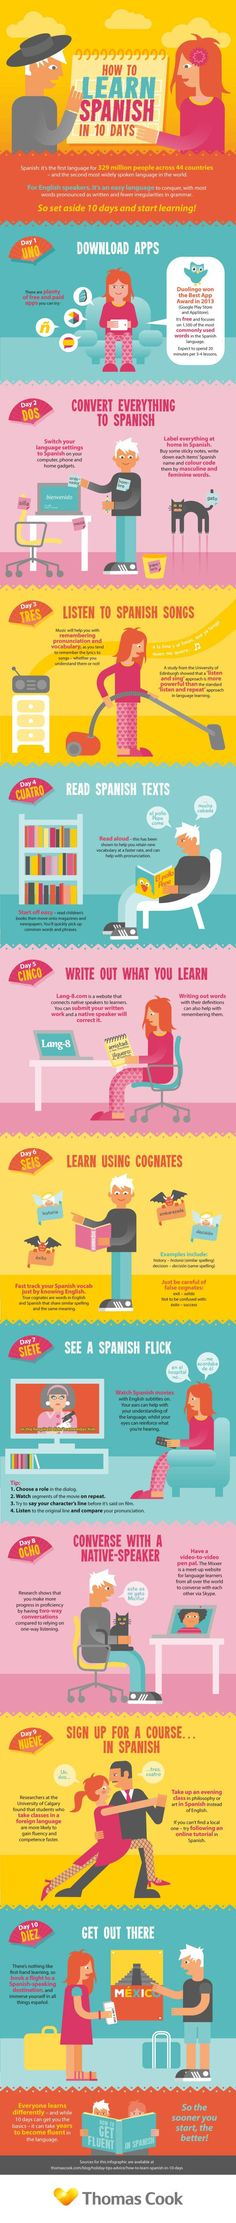 How To Learn Spanish In 10 Days Infographic...Well...I don't need to do this in 10 days, but still good tips!!